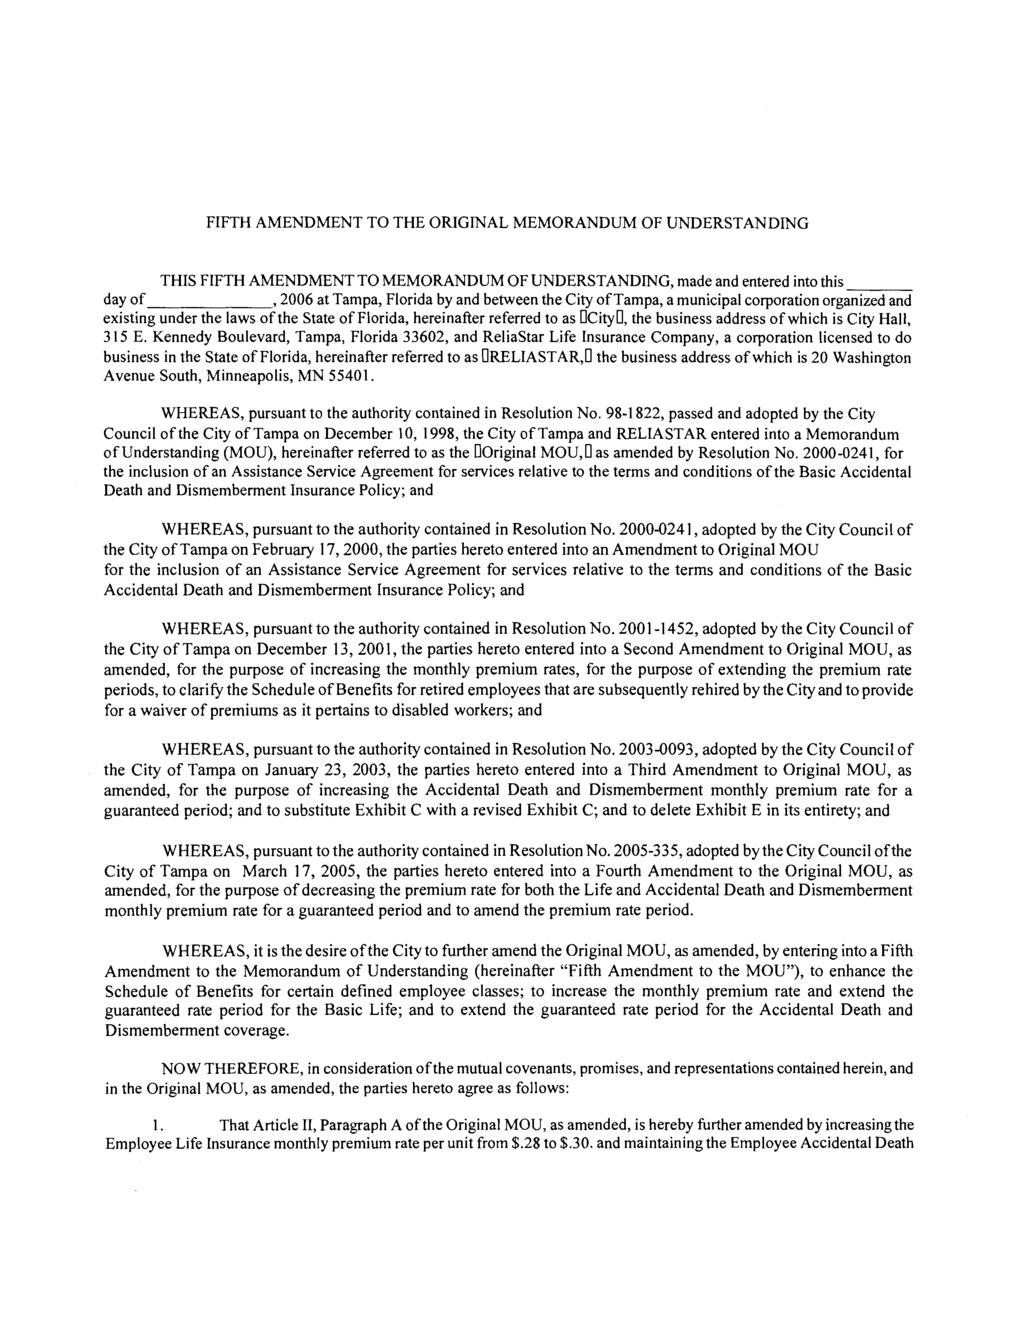 FIFTH AMENDMENT TO THE ORIGTNAL MEMORANDUM OF UNDERSTANDTNG THIS FIFTH AMENDMENT TO MEMORANDUM OF UNDERSTANDING, made and entered into this day of,2006 at Tampa, Florida by and between the City of